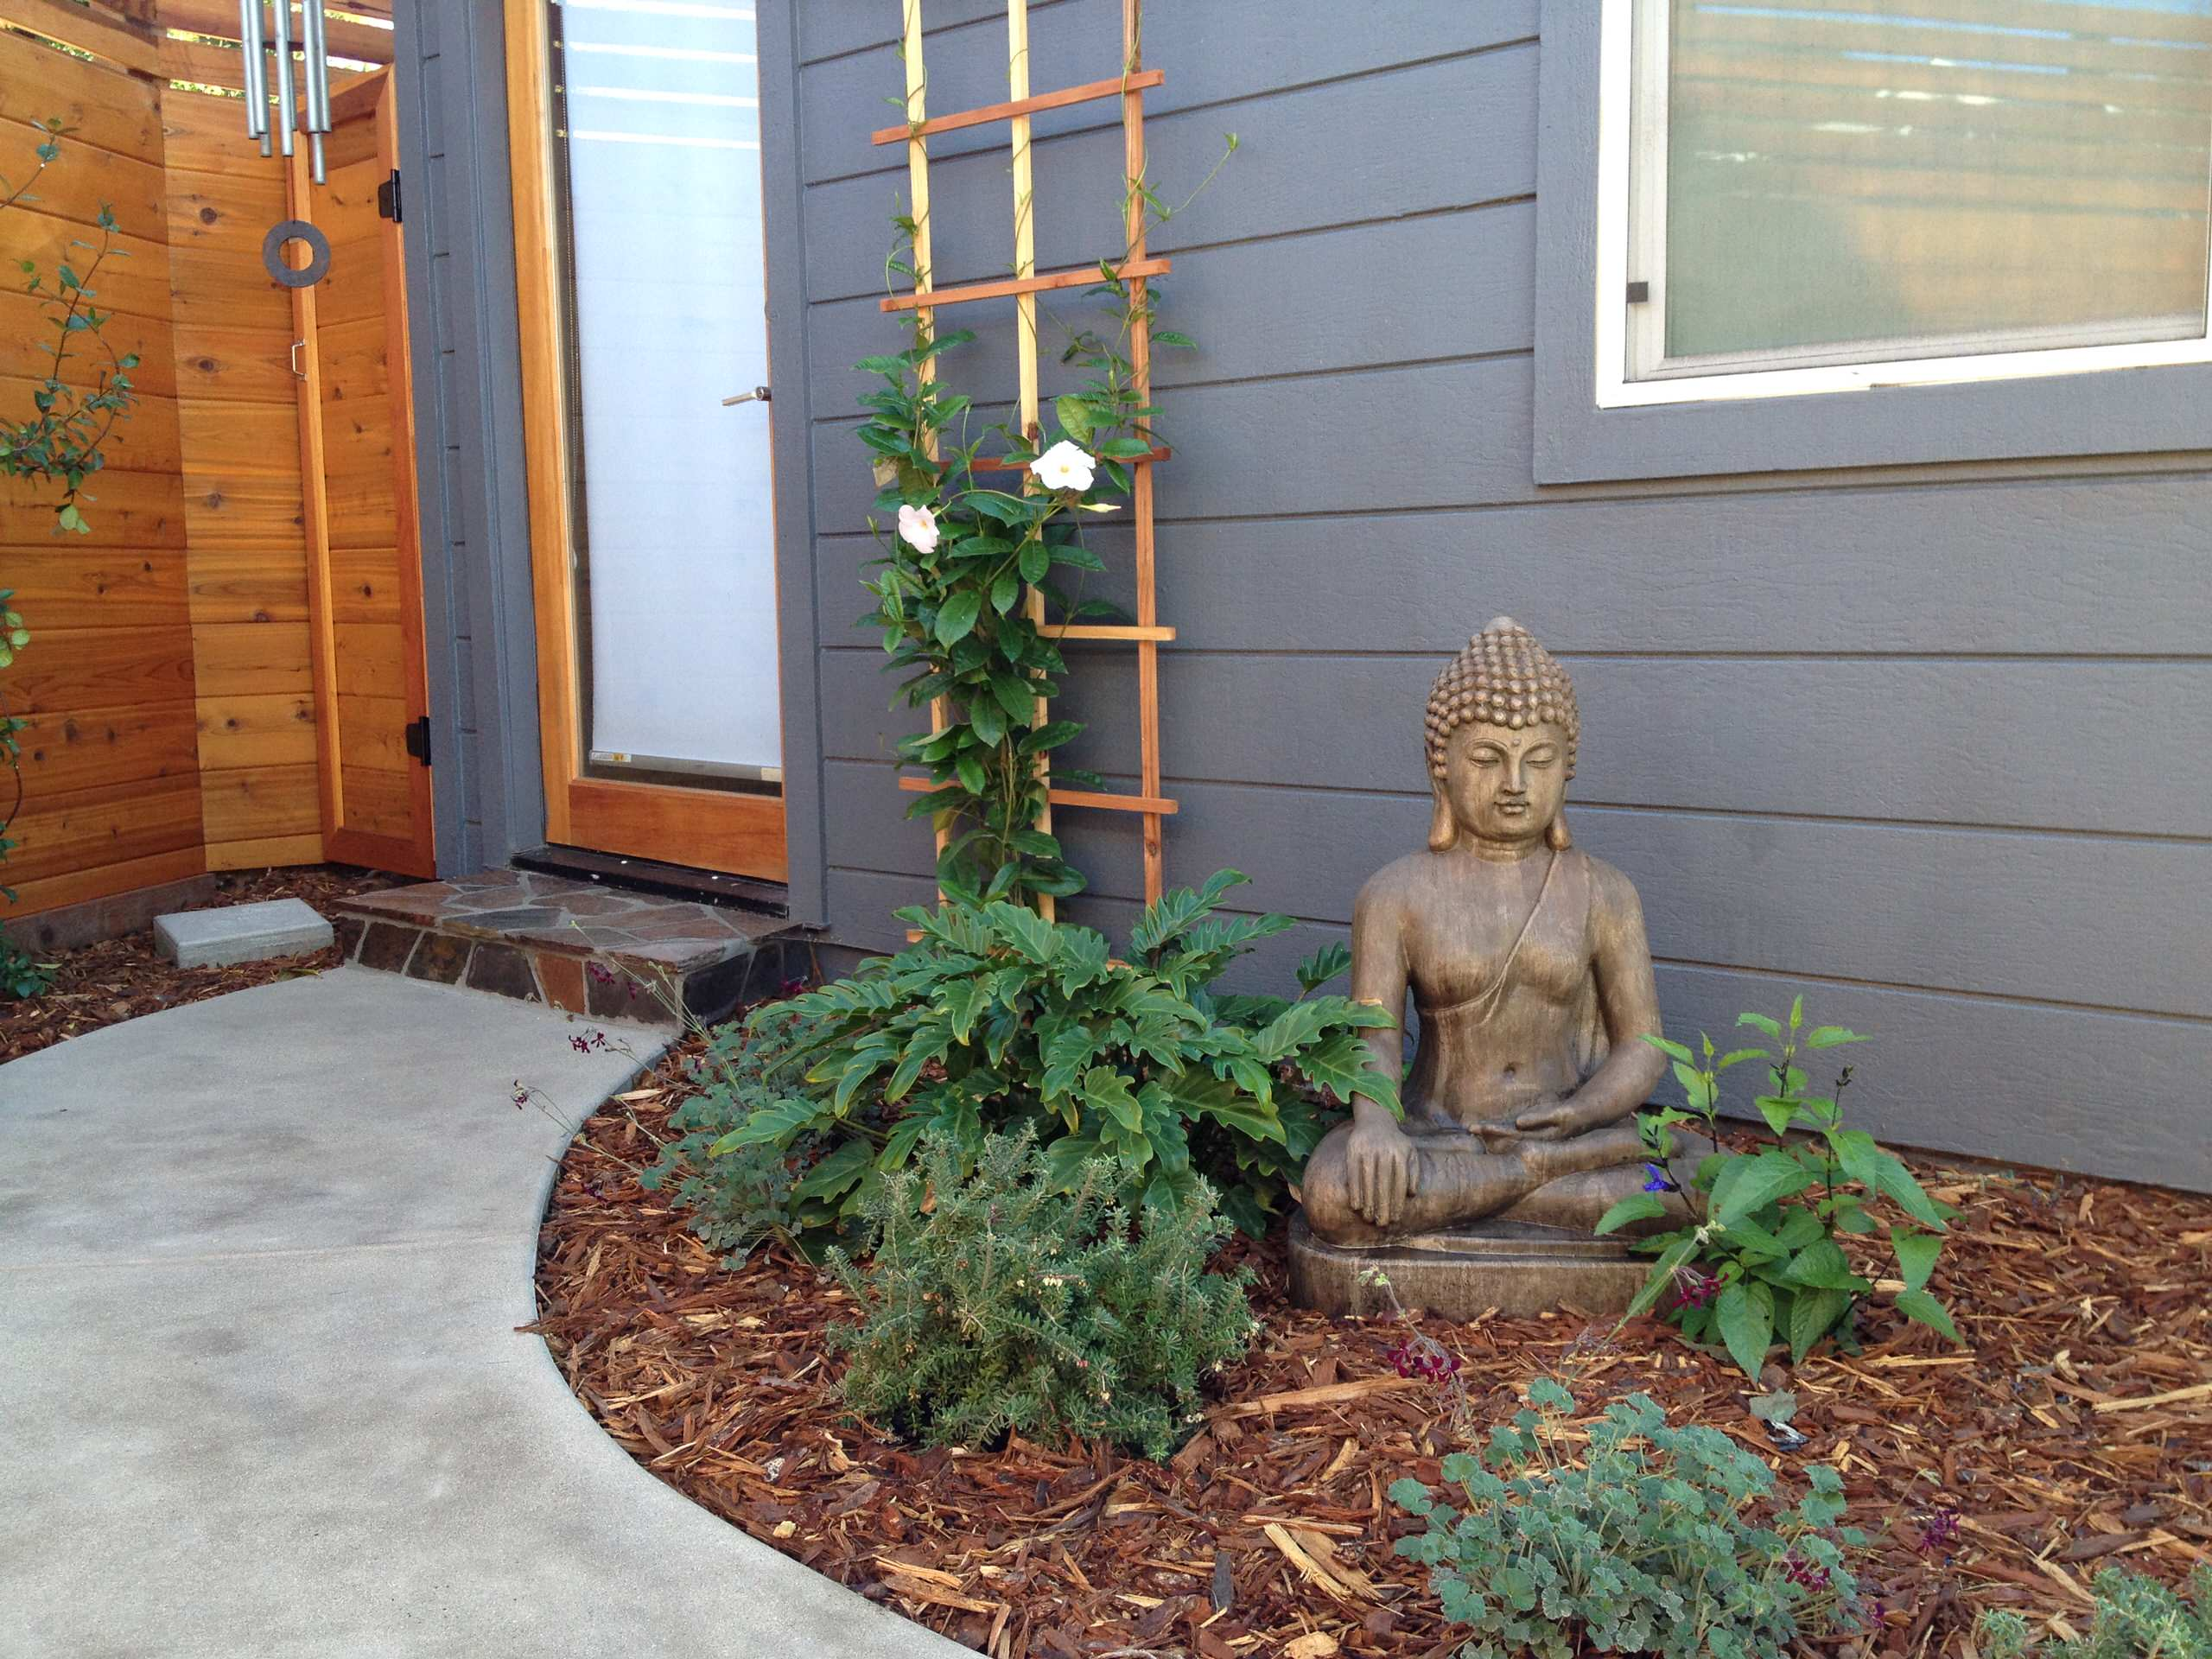 Garden Art Tucked Into the Plantings